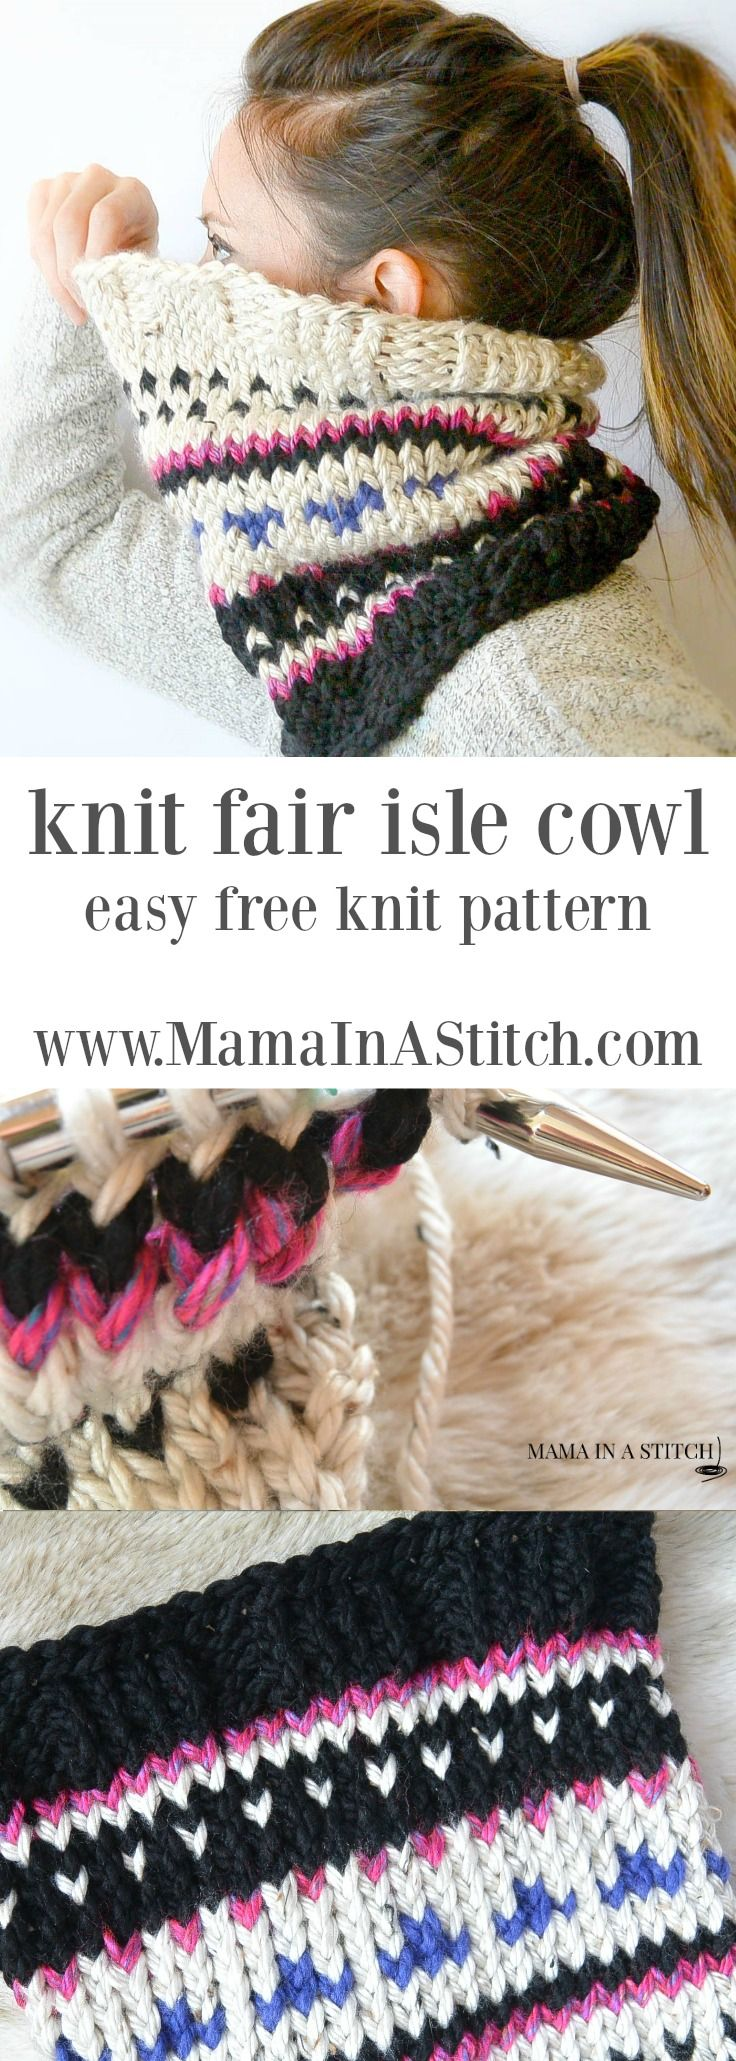 Alpine Heights Knit Fair Isle Cowl via @MamaInAStitch